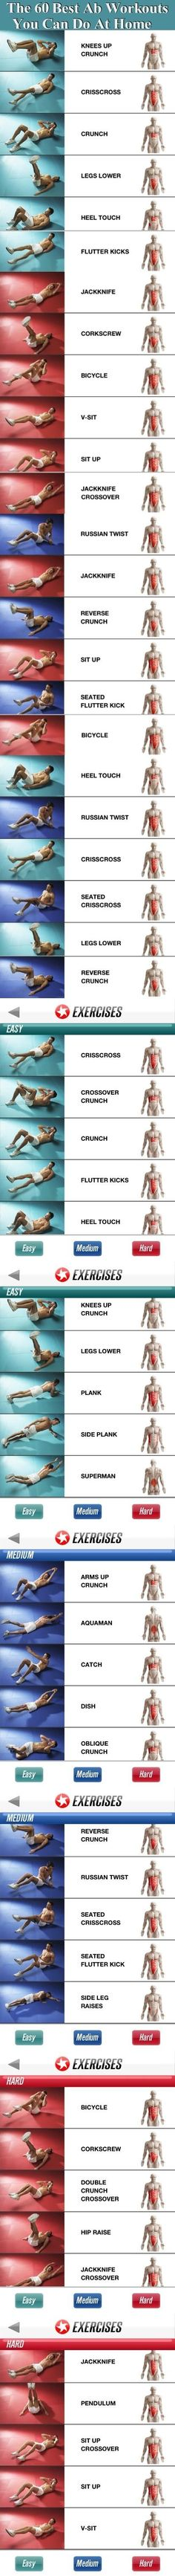 The 60 Best Ab Workouts You Can Do From Home Pictures, Photos, and Images for…